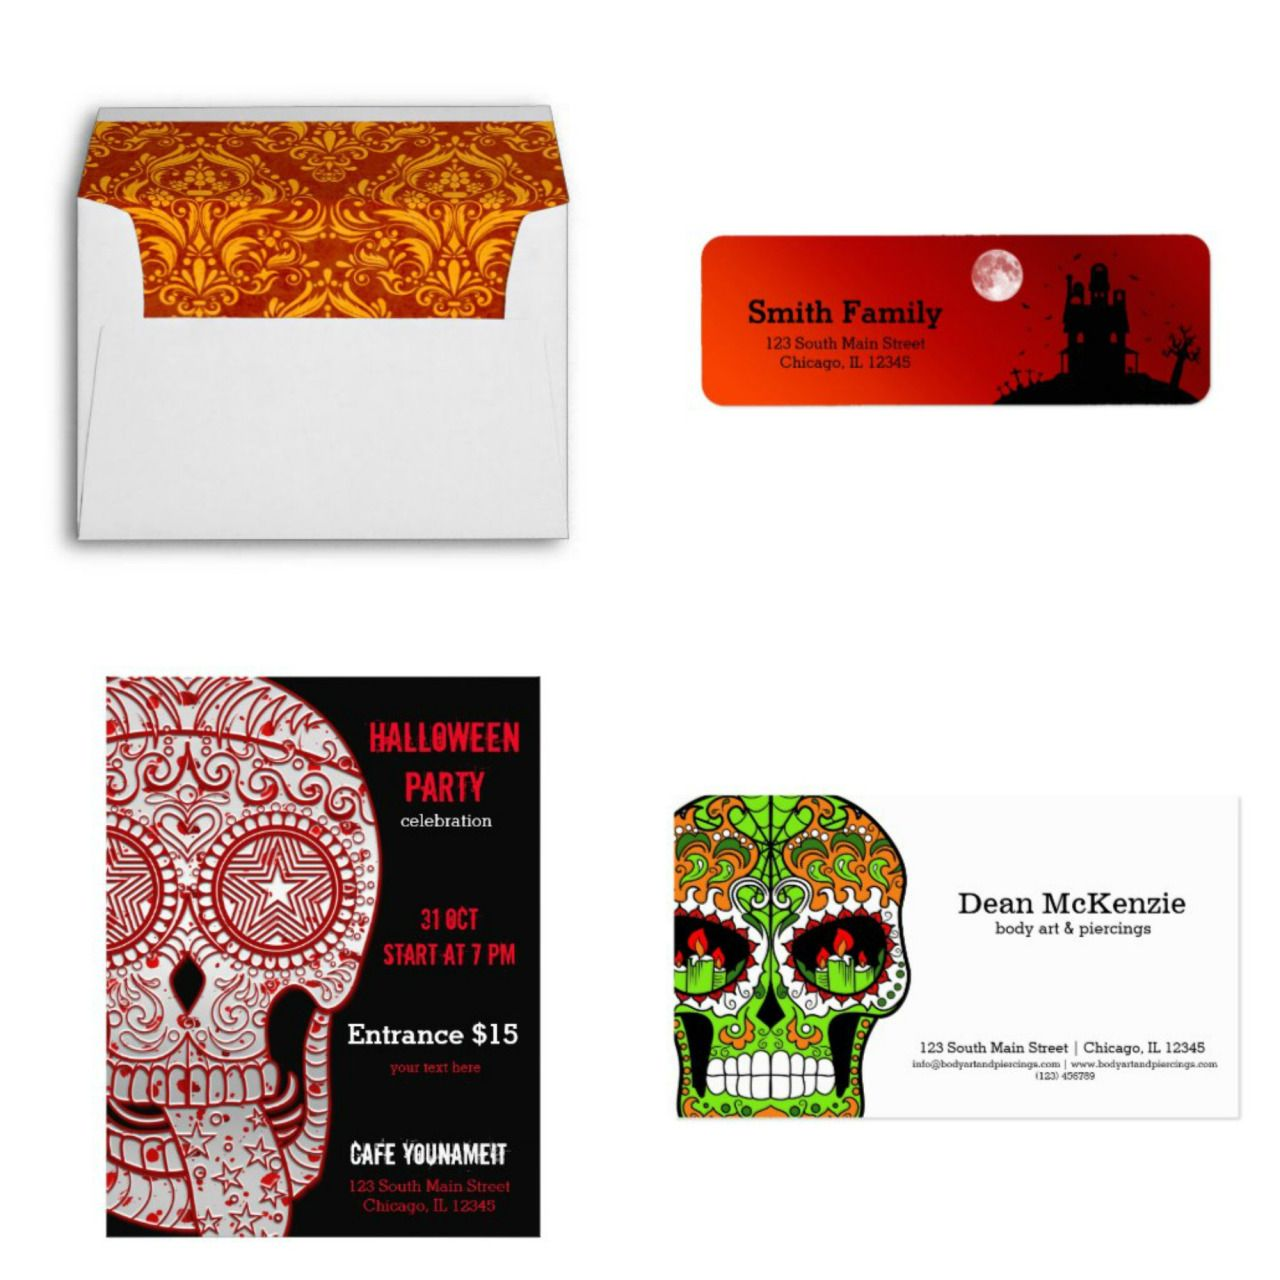 Sale deals 50off envelopes businesscards 40 off labels flyers sale deals 50off envelopes businesscards 40 off labels reheart Image collections